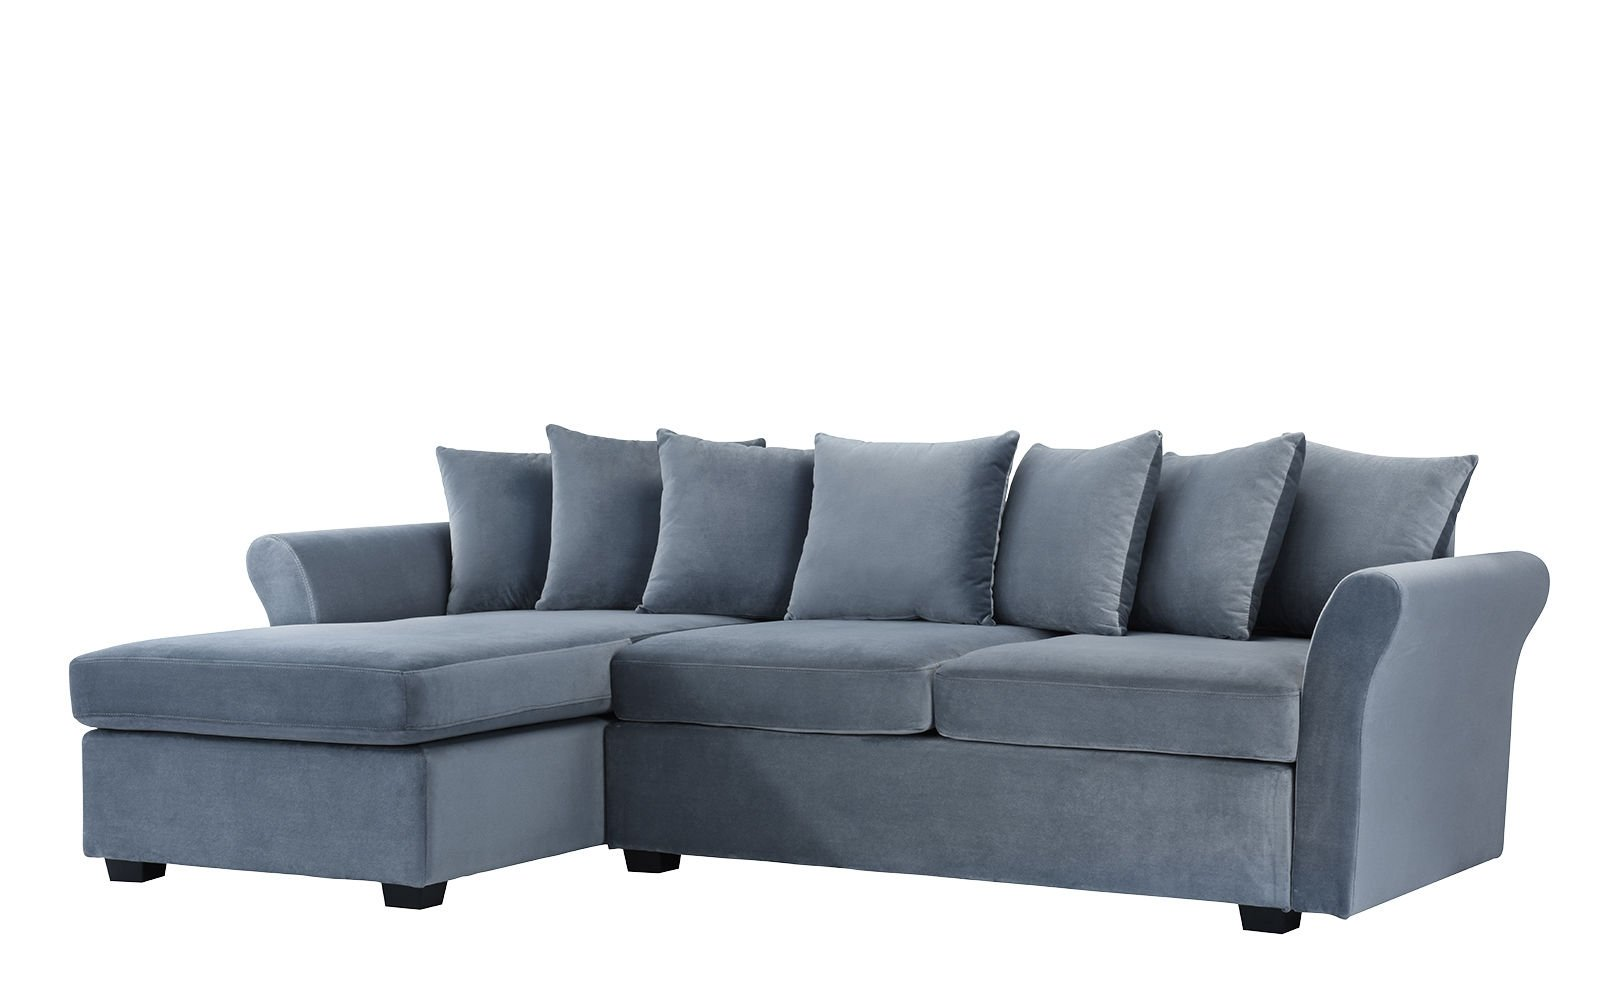 Modern large velvet sectional sofa l shape couch with extra wide chaise lounge light grey